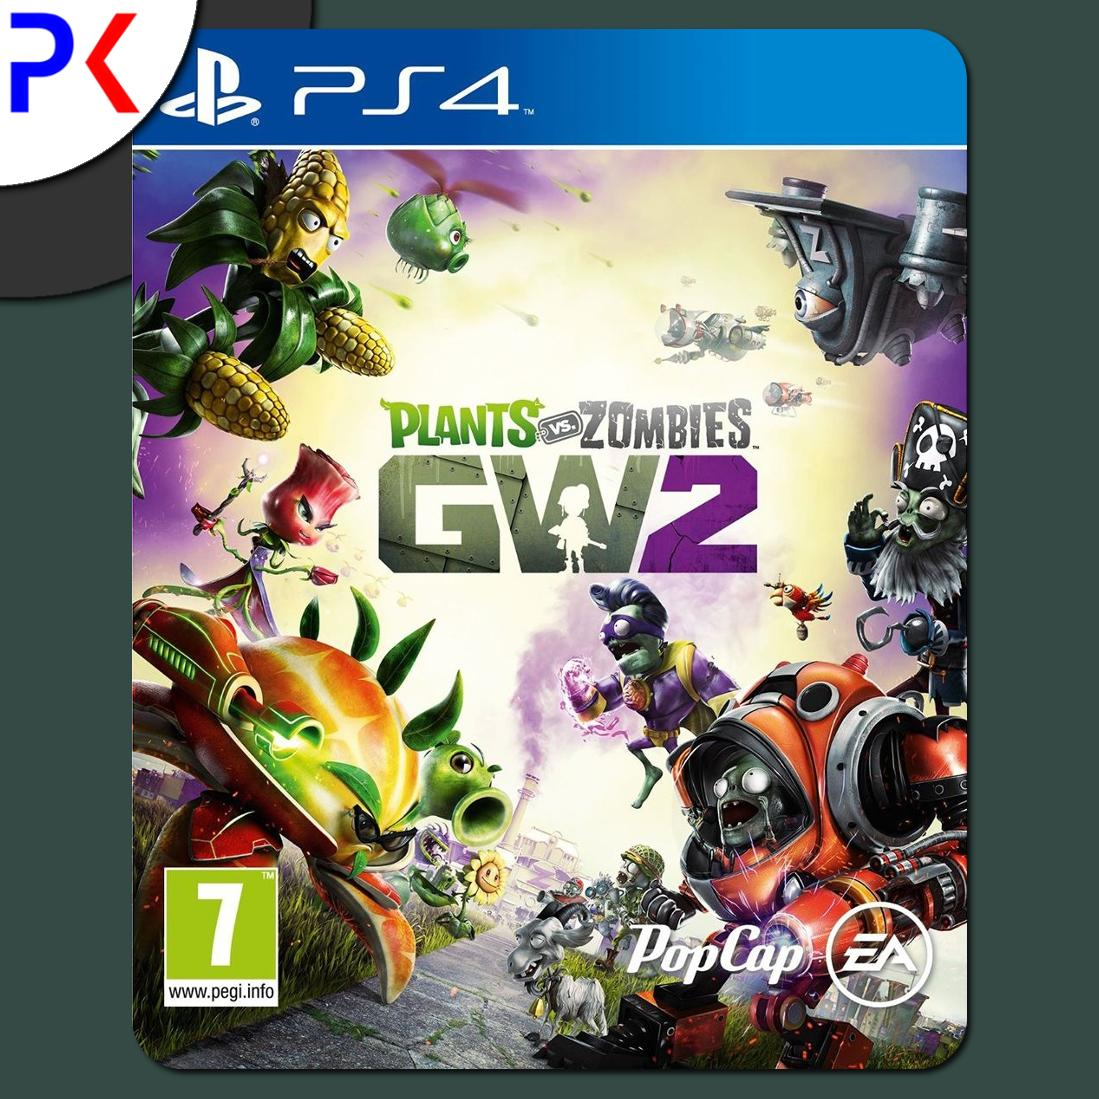 The New Price Of Ps4 Marvel Vs Capcom Infinite And Update Reg 3 Plants Zombies Garden Warfare 2 R1